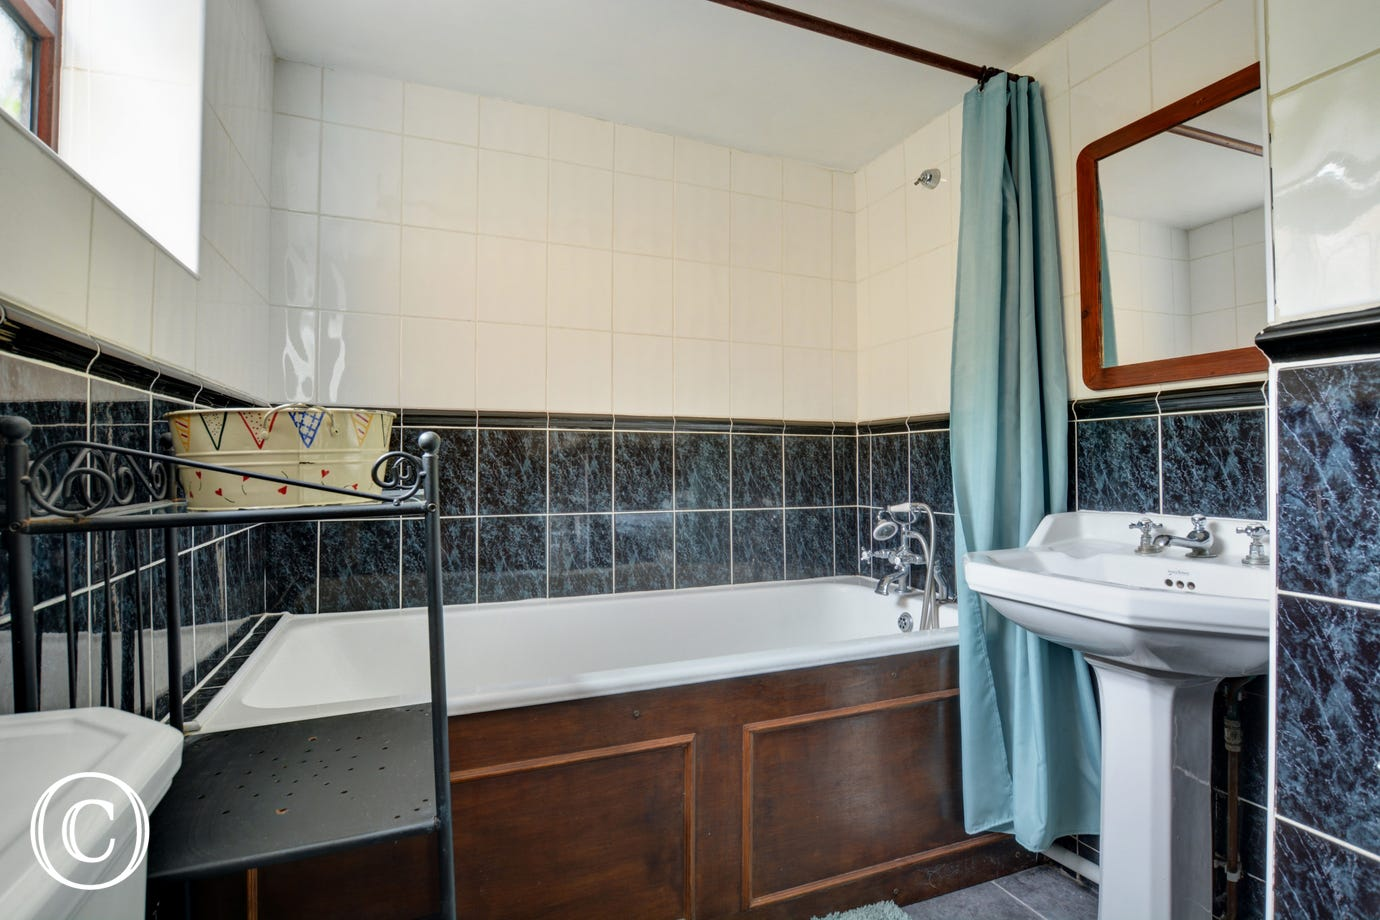 Lovely family bathroom with bath, wc and basin